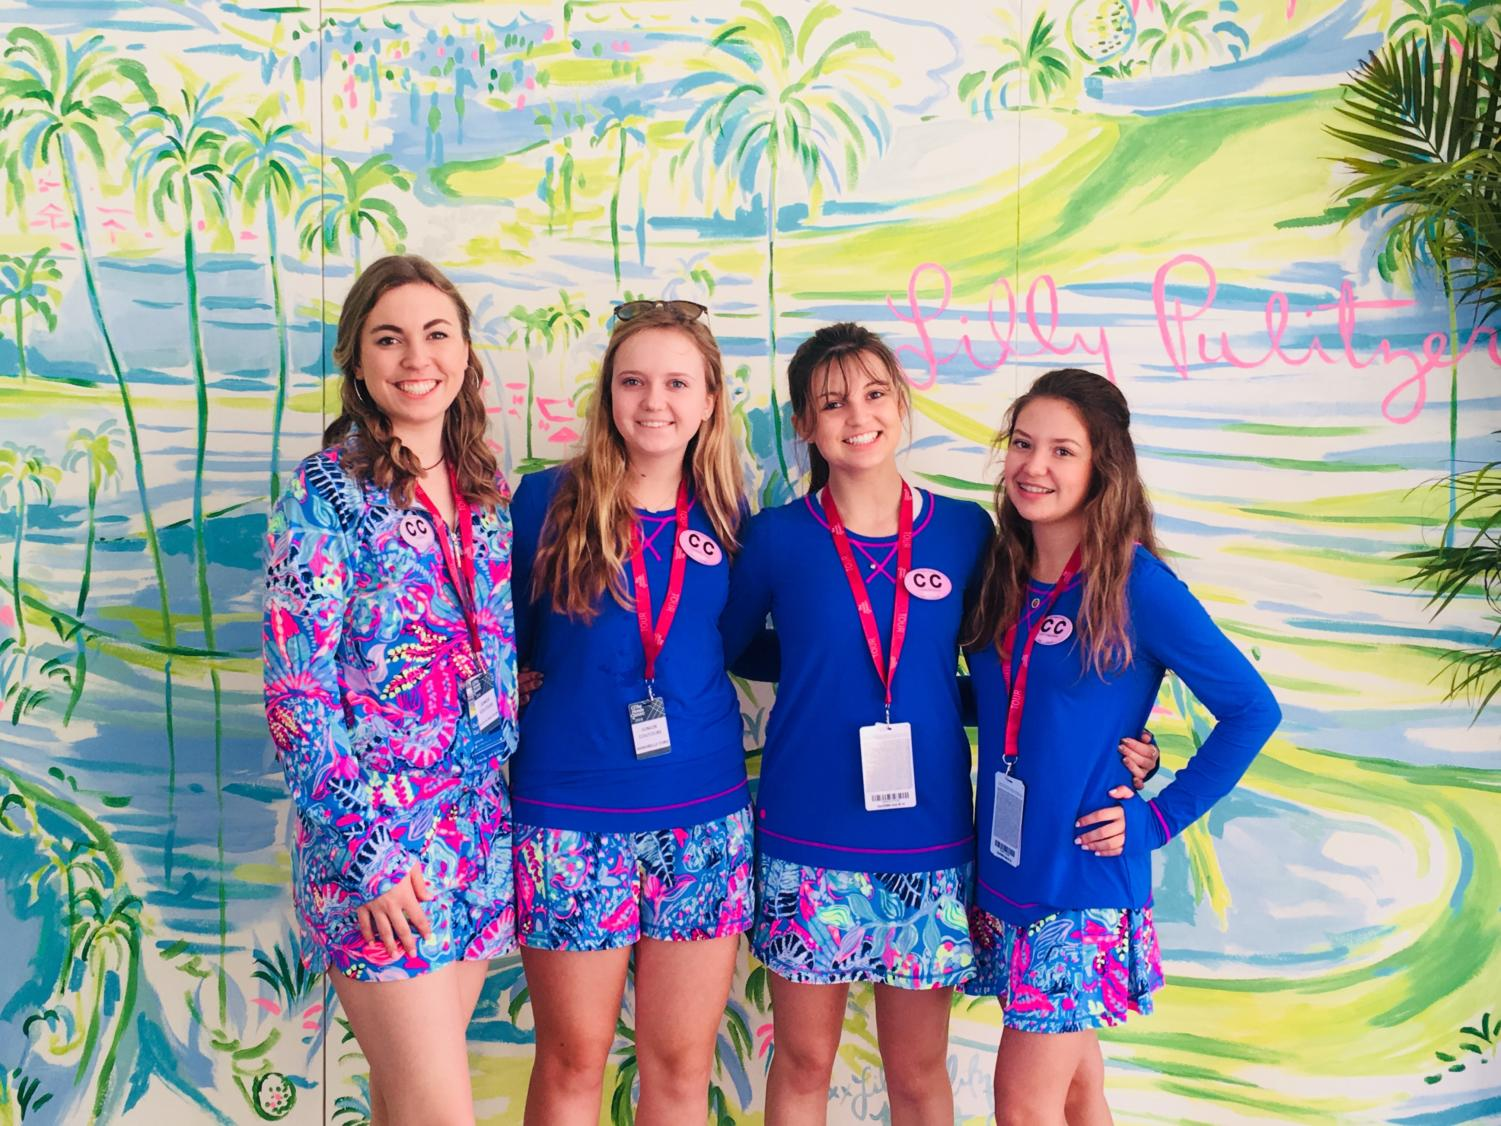 Junior Couture club members juniors Katelyn Smallwood and Lexi Coquillette and sophomores Annabelle Ford and Cressa Bronson pose in front of a Lilly Pulitzer-themed wall at the Honda Classic, a fashion company which sponsors both the Couture Club as well as the Honda Classic.